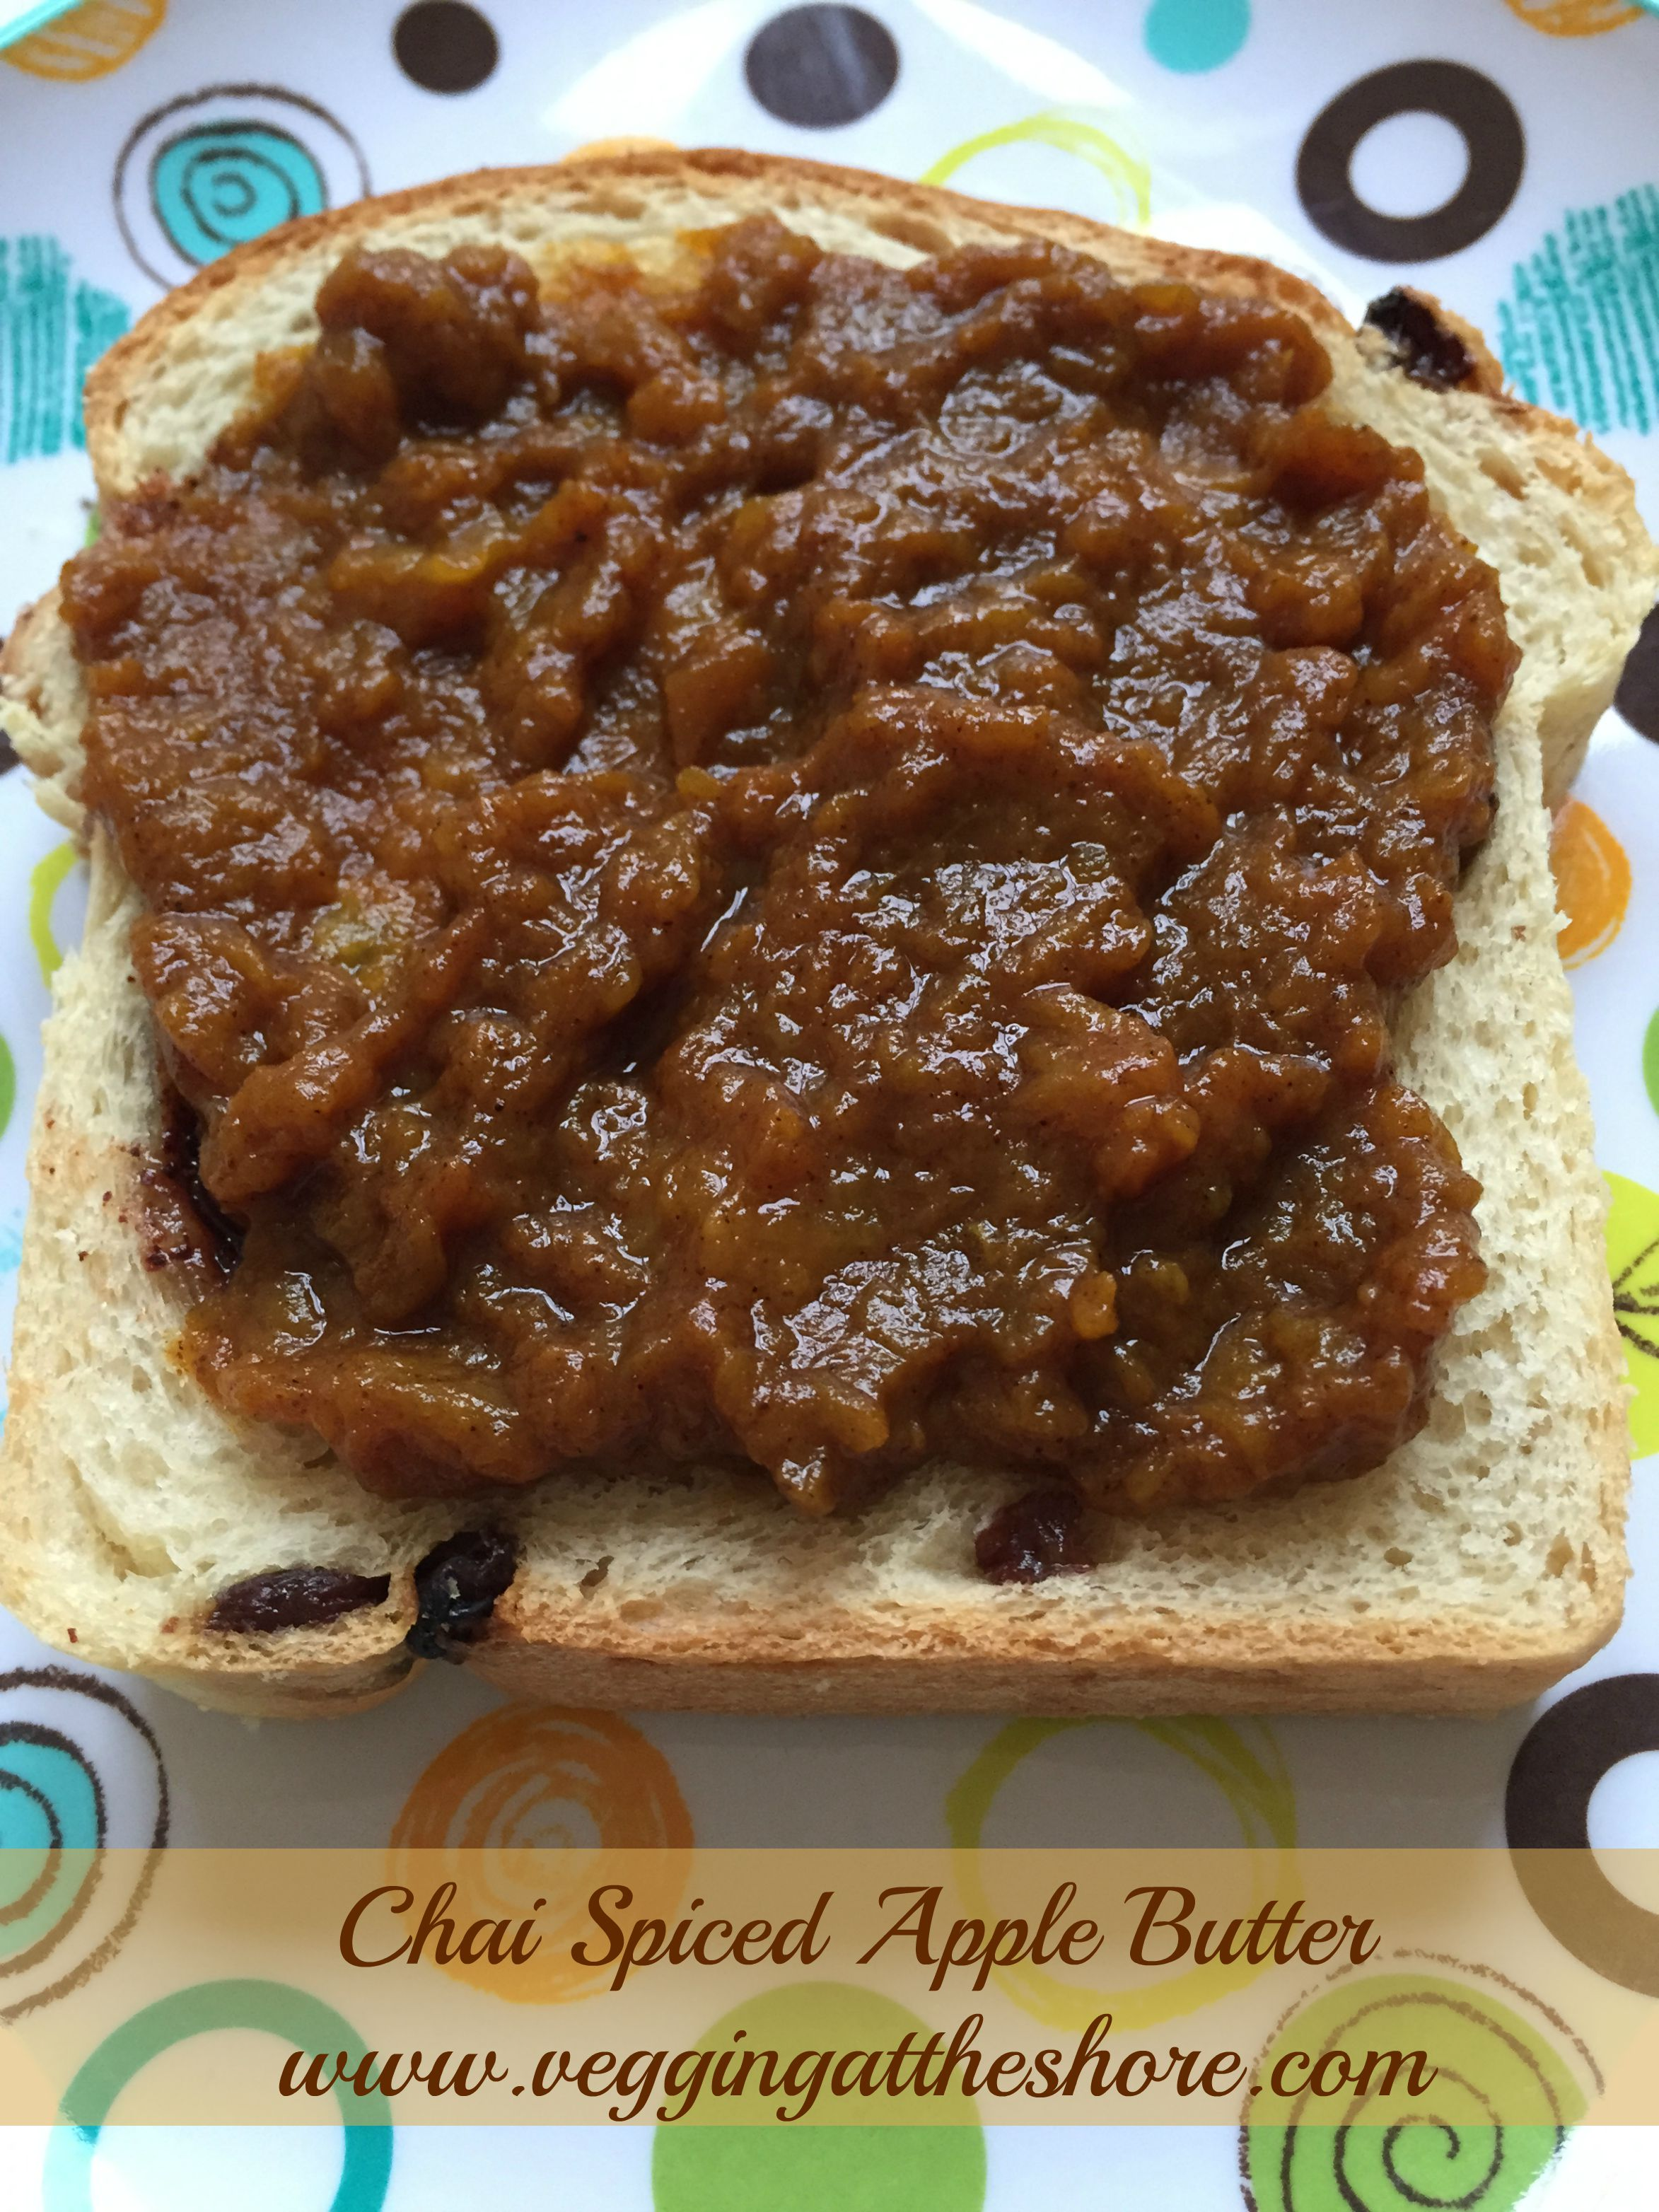 Chai Spiced Apple Butter - Vegging at the Shore